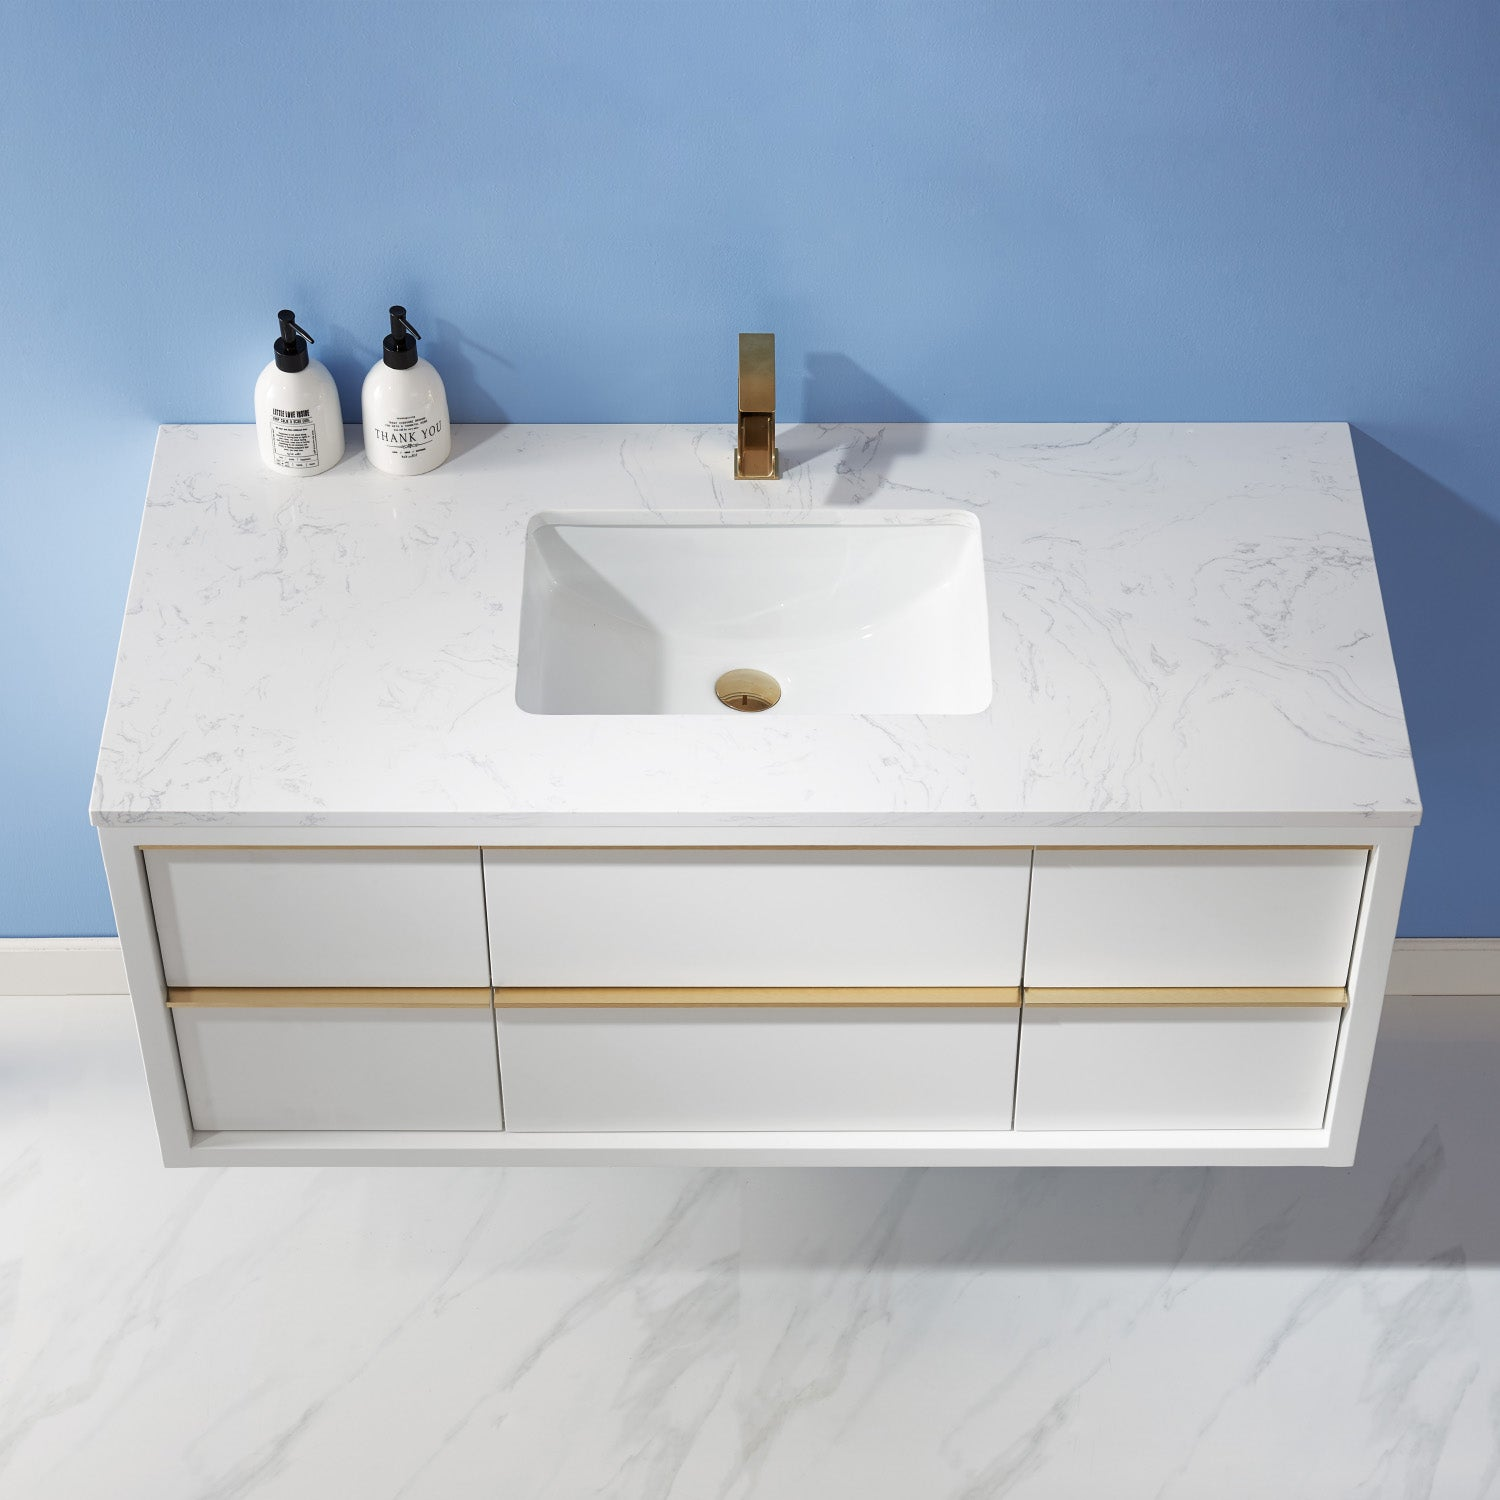 "Morgan 48"" Single Bathroom Vanity Set in White and Composite Carrara White Stone Countertop without Mirror"